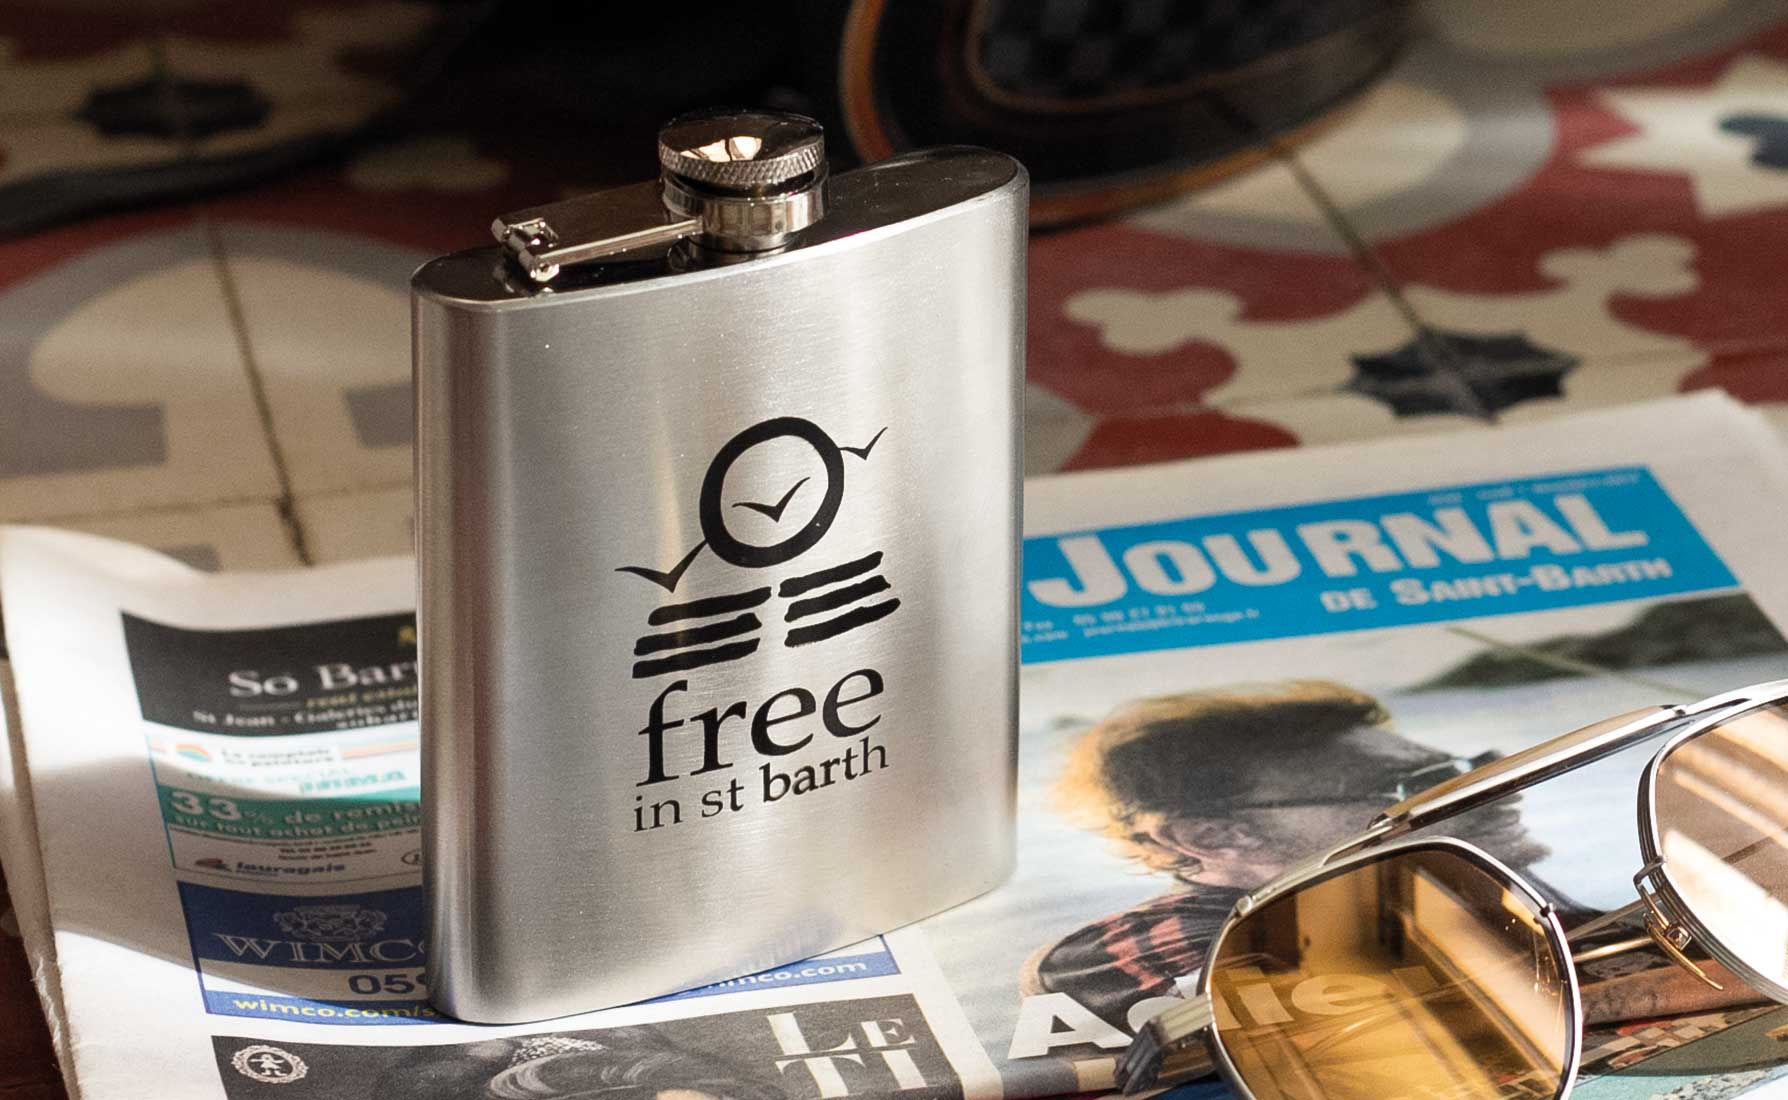 Free in St Barth | Flask